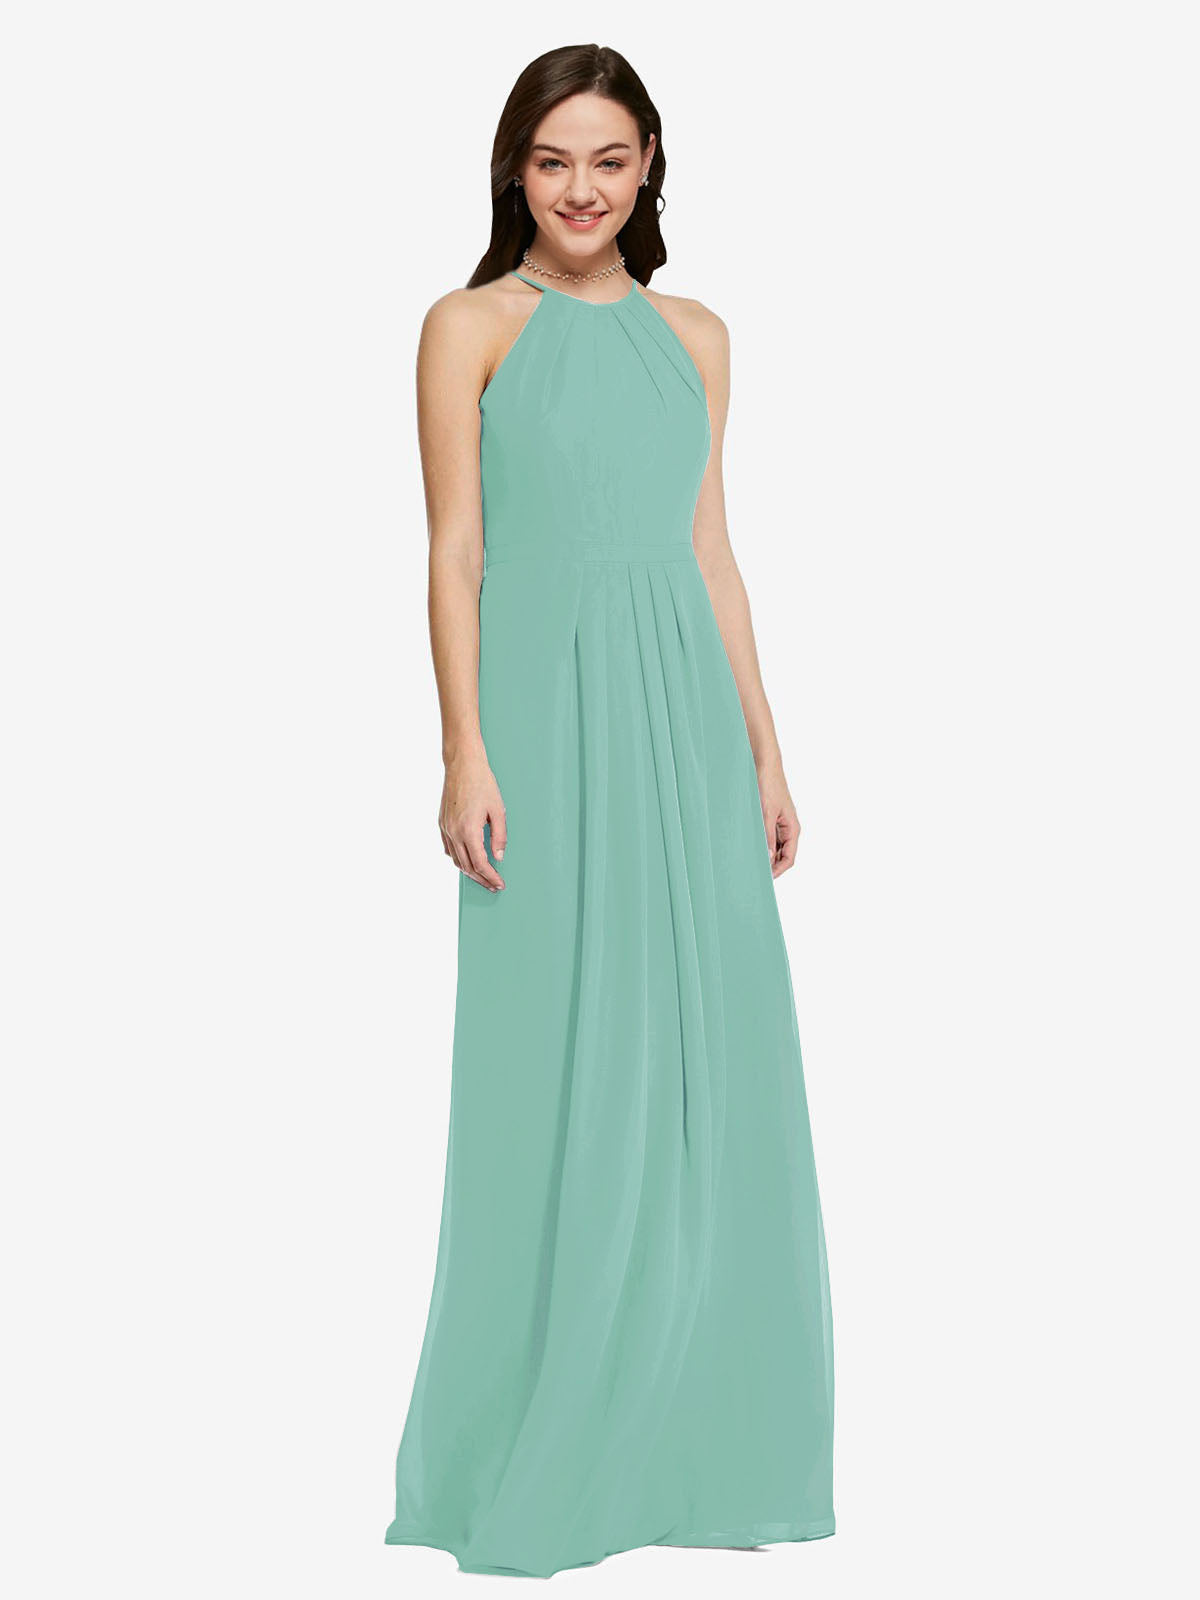 Long Sheath High Neck Halter Sleeveless Jade Chiffon Bridesmaid Dress Koloti